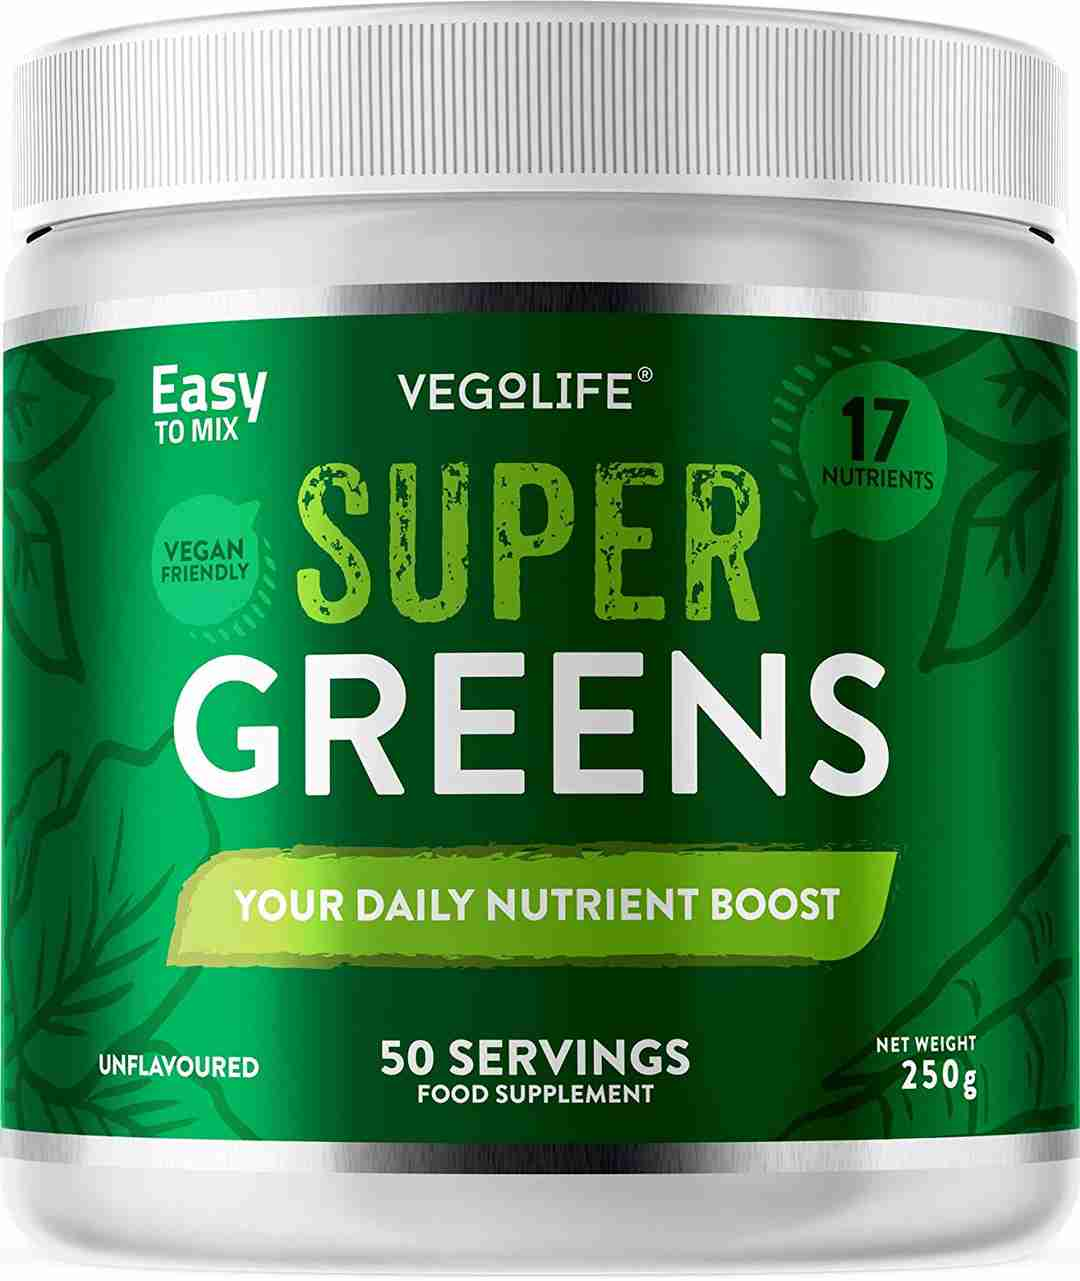 Vegolife Super Greens - Cruelty Free Vegan friendly greens drink powder